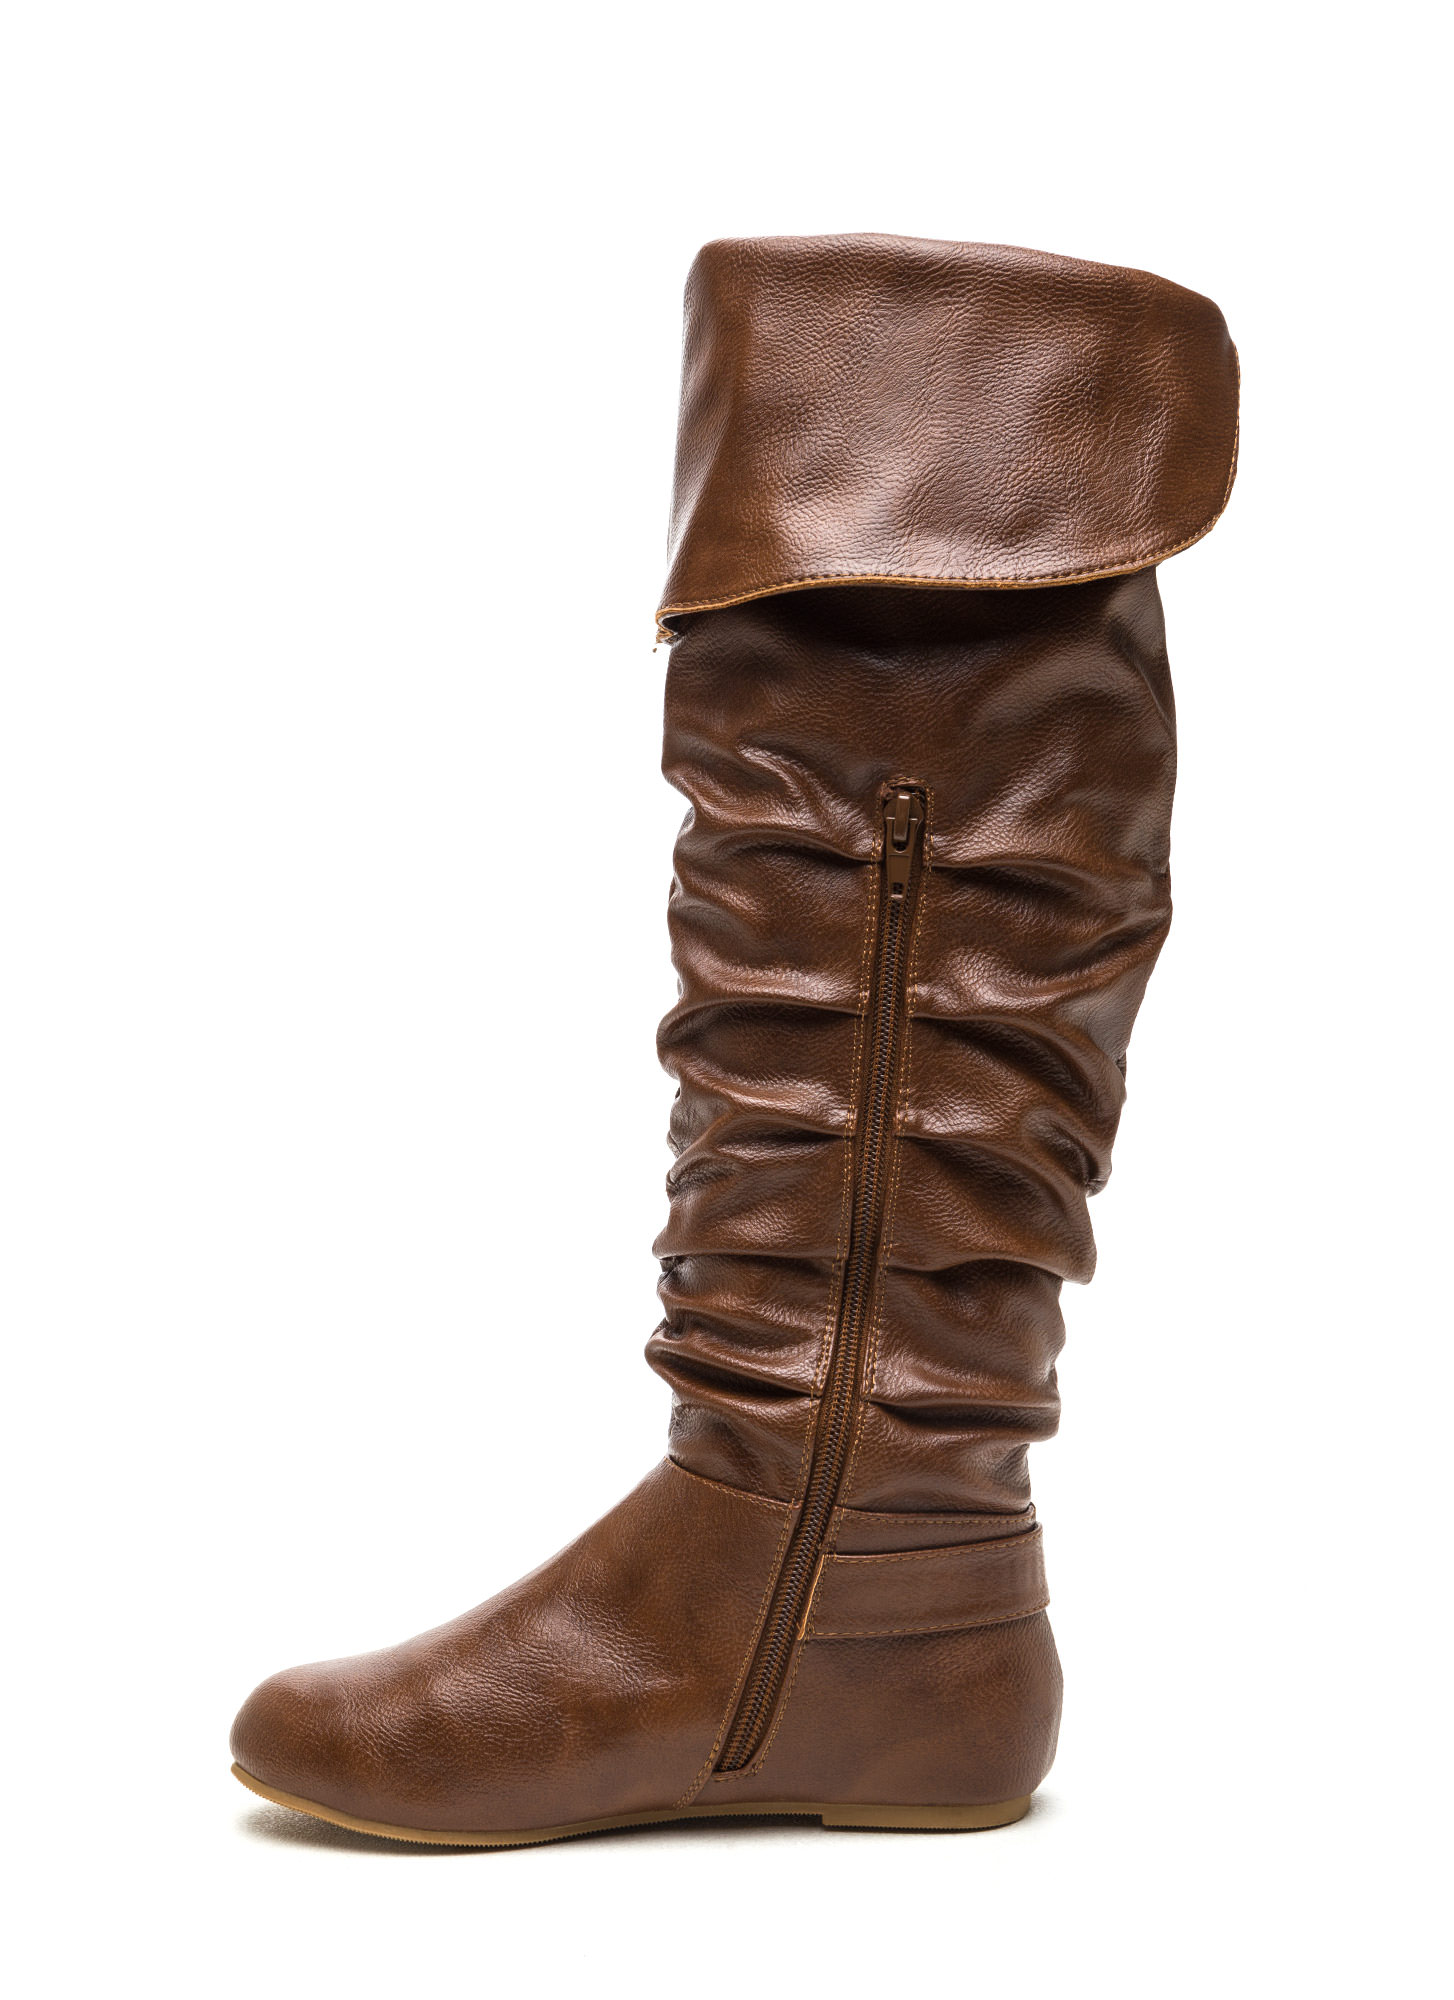 Cuff Love Slouchy Faux Leather Boots CHESTNUT